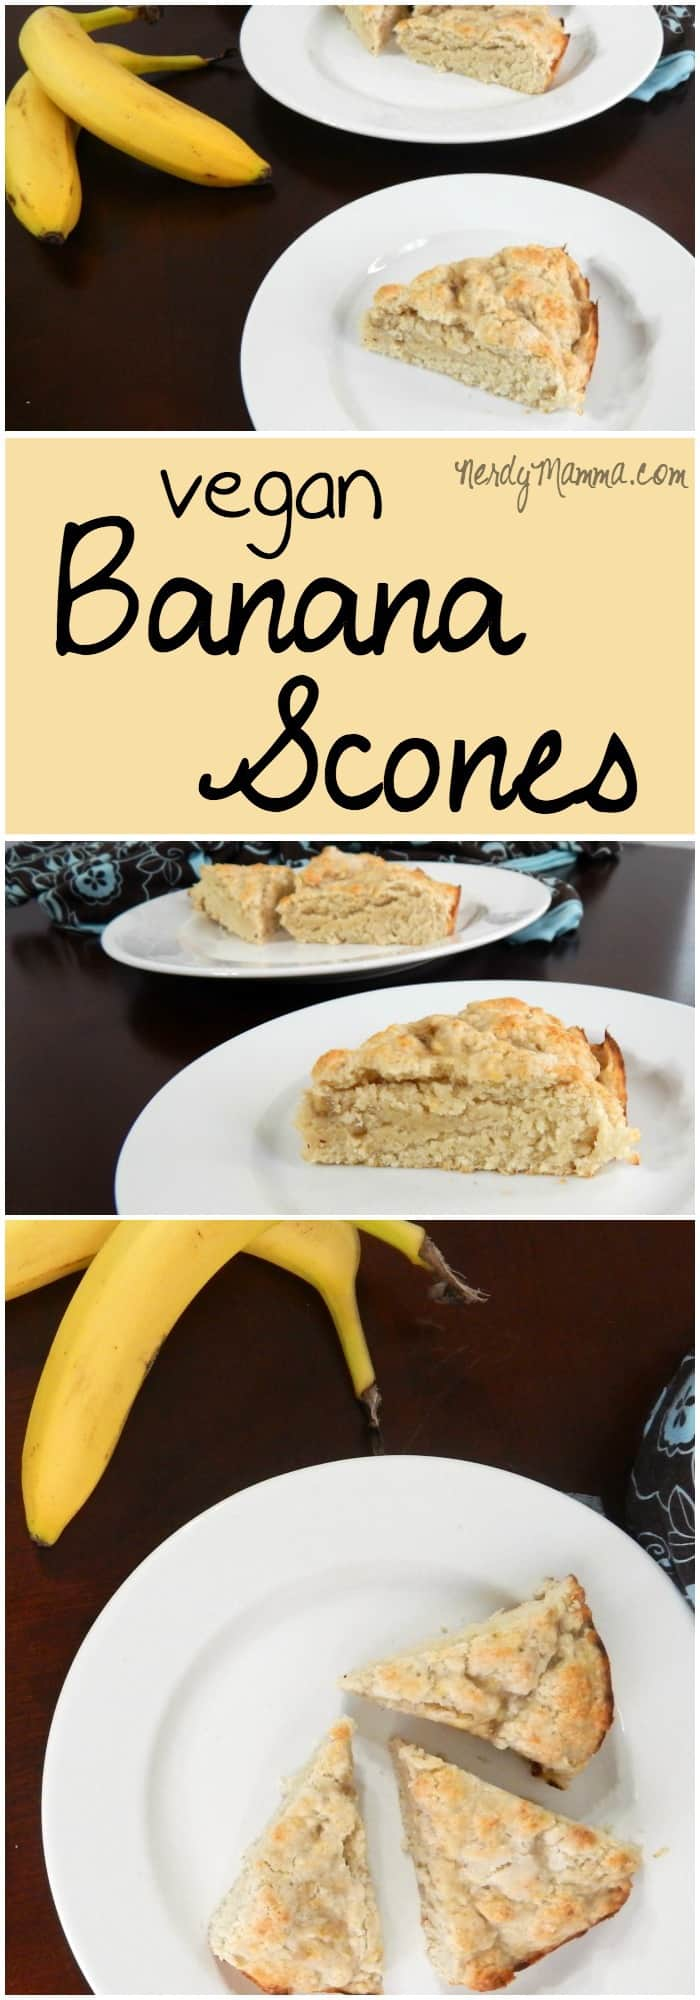 I can't make enough of these dairy-free and eggless scones for my kids. They will eat them ALL. LOL!